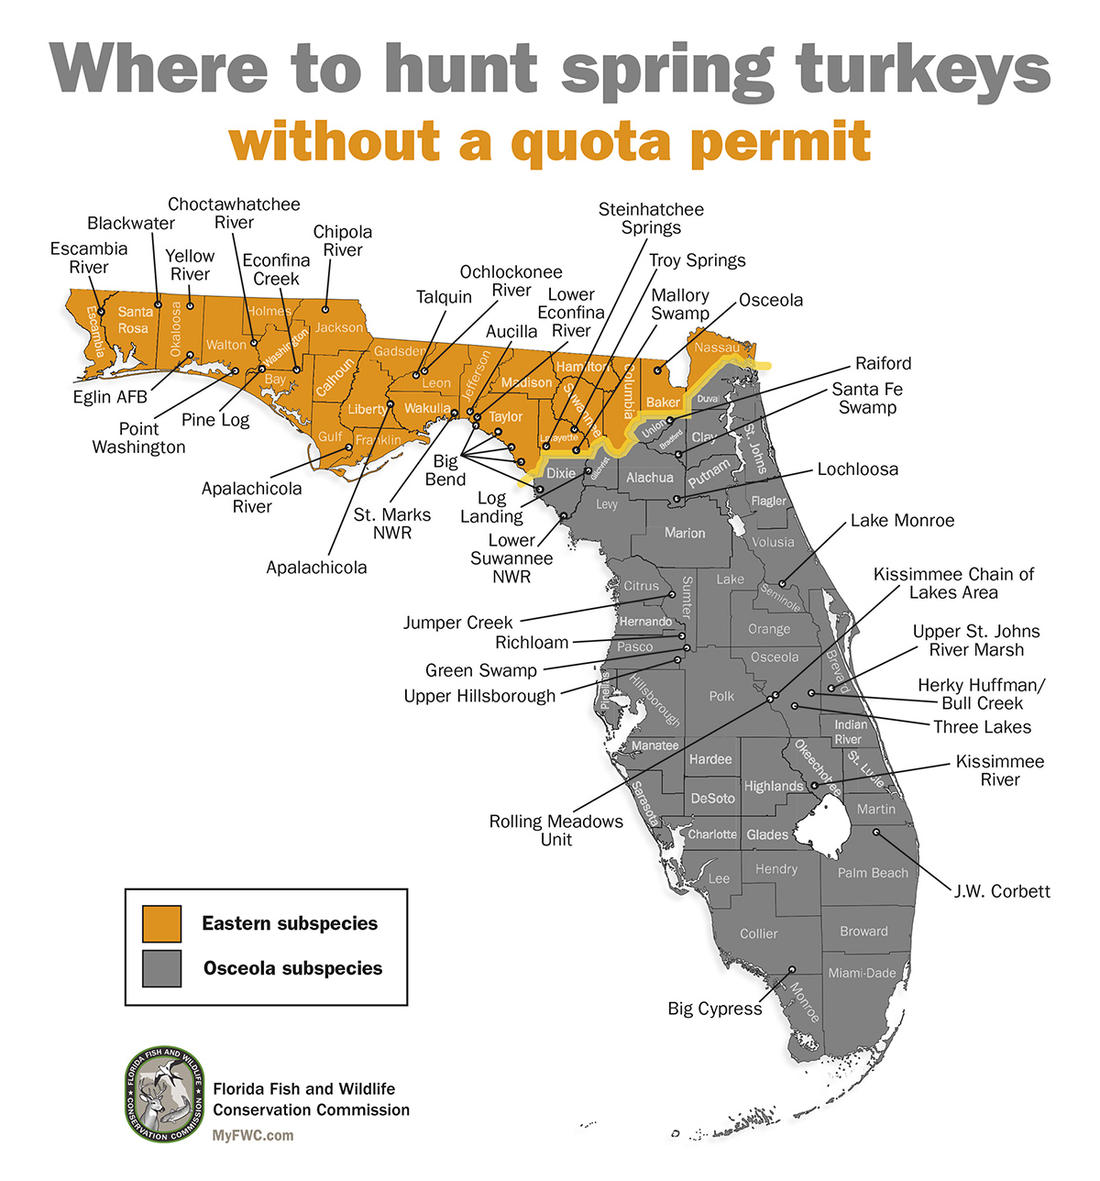 Some public lands allow spring turkey hunts with a quota permit; some without it. Image by Florida Fish and Wildlife Conservation Commission